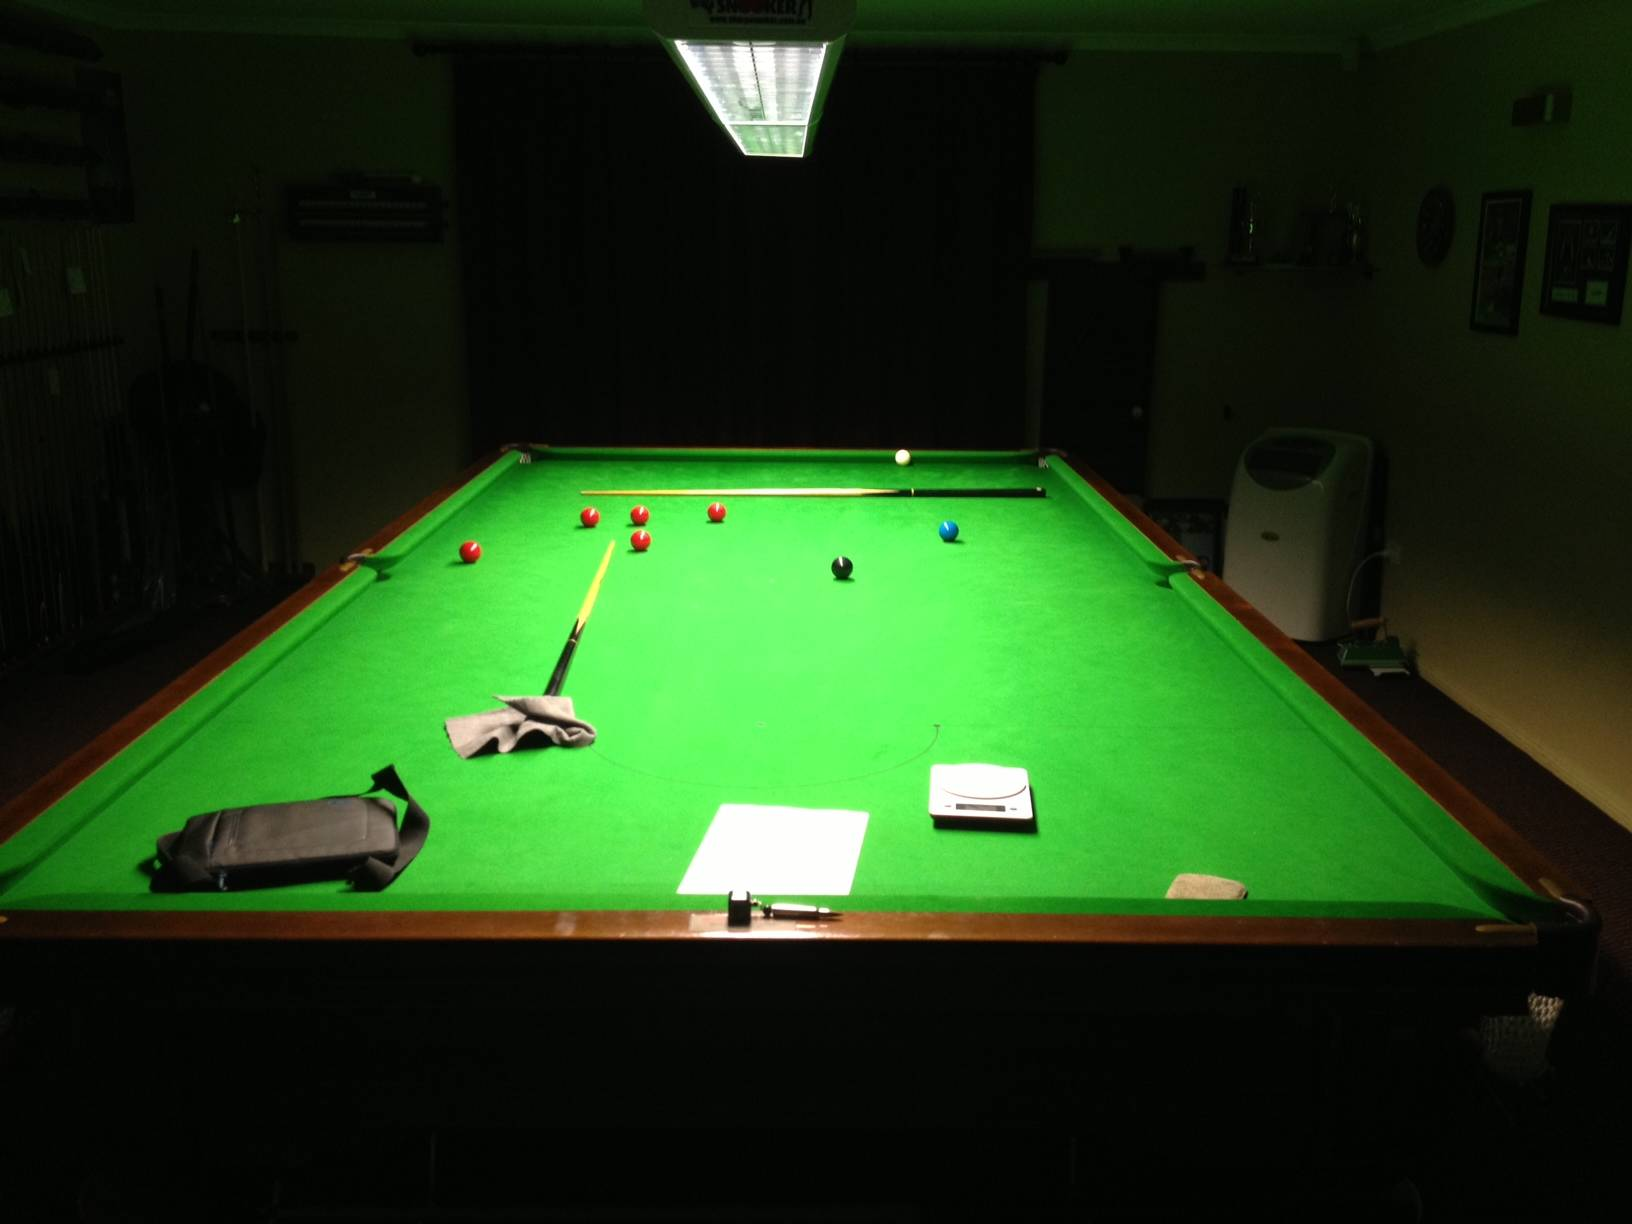 Snooker and pool table light 6ft 8ft ebay - Pool table lights ...